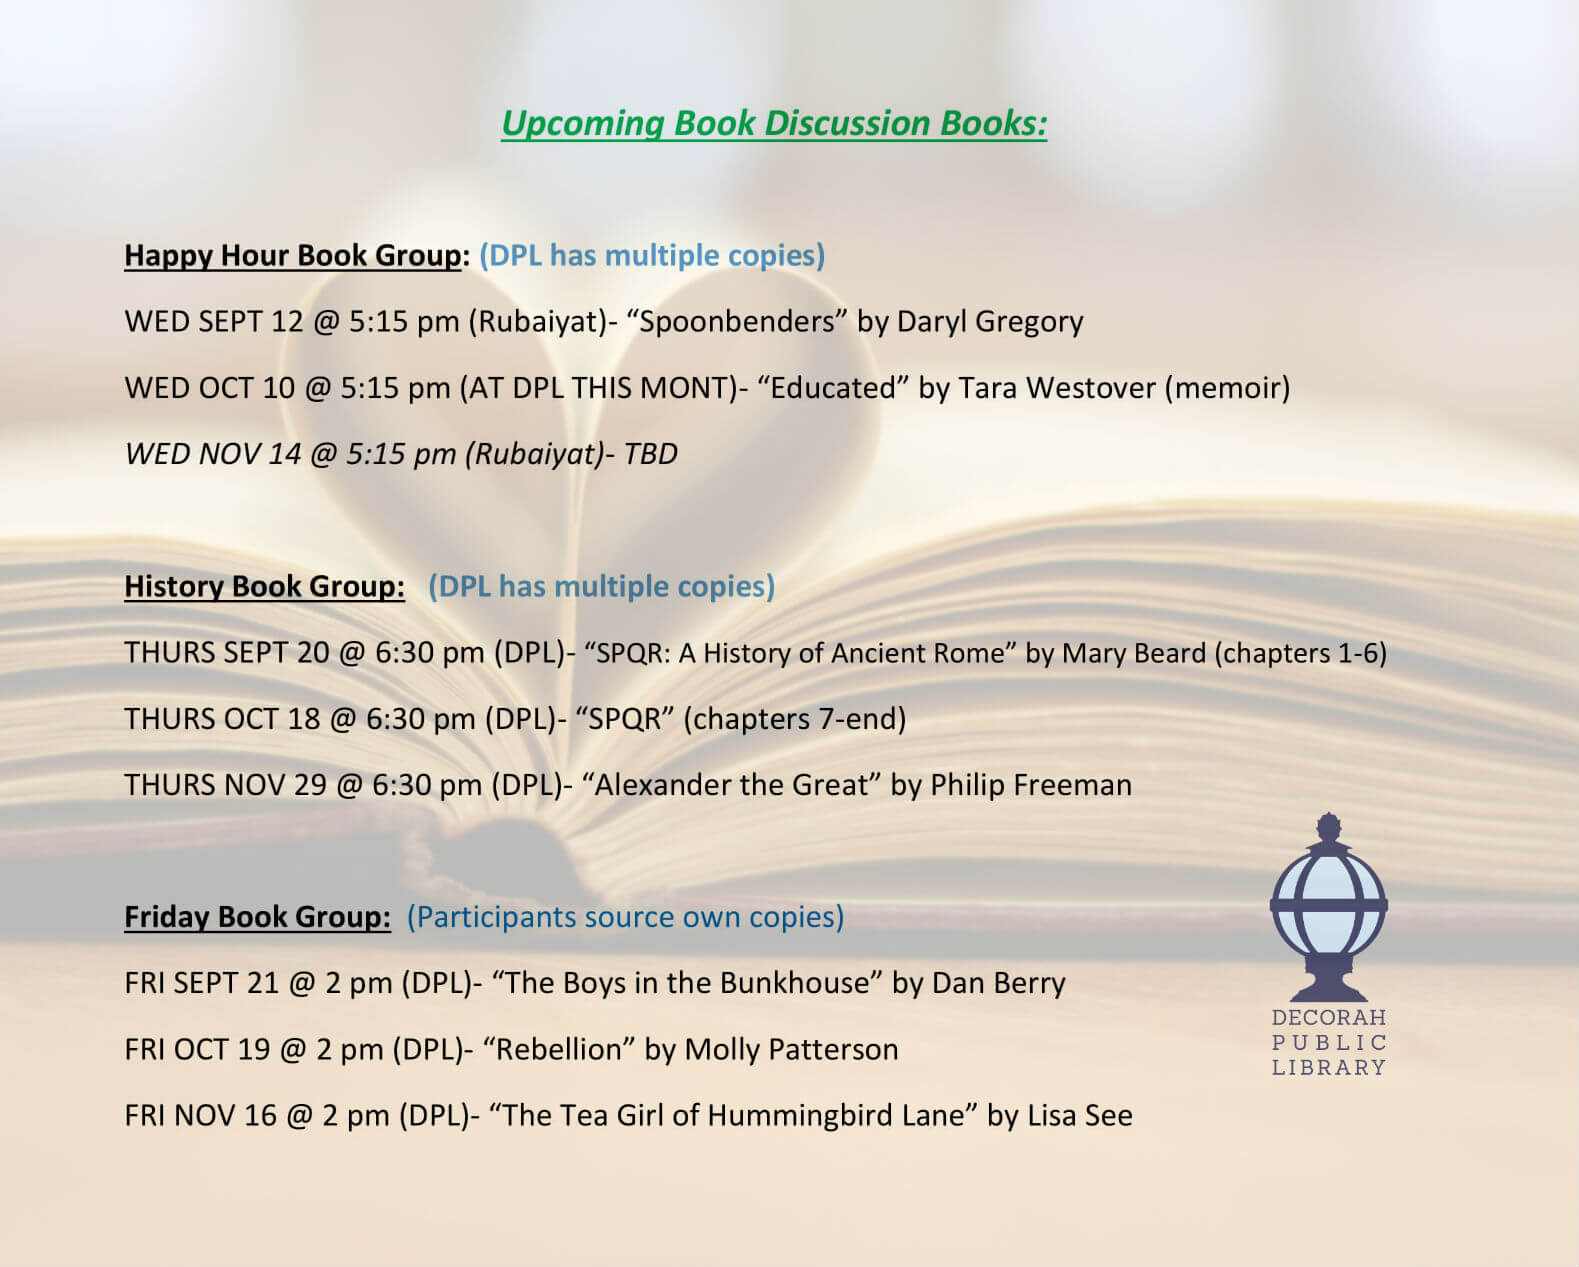 Upcoming Book Discussion Books